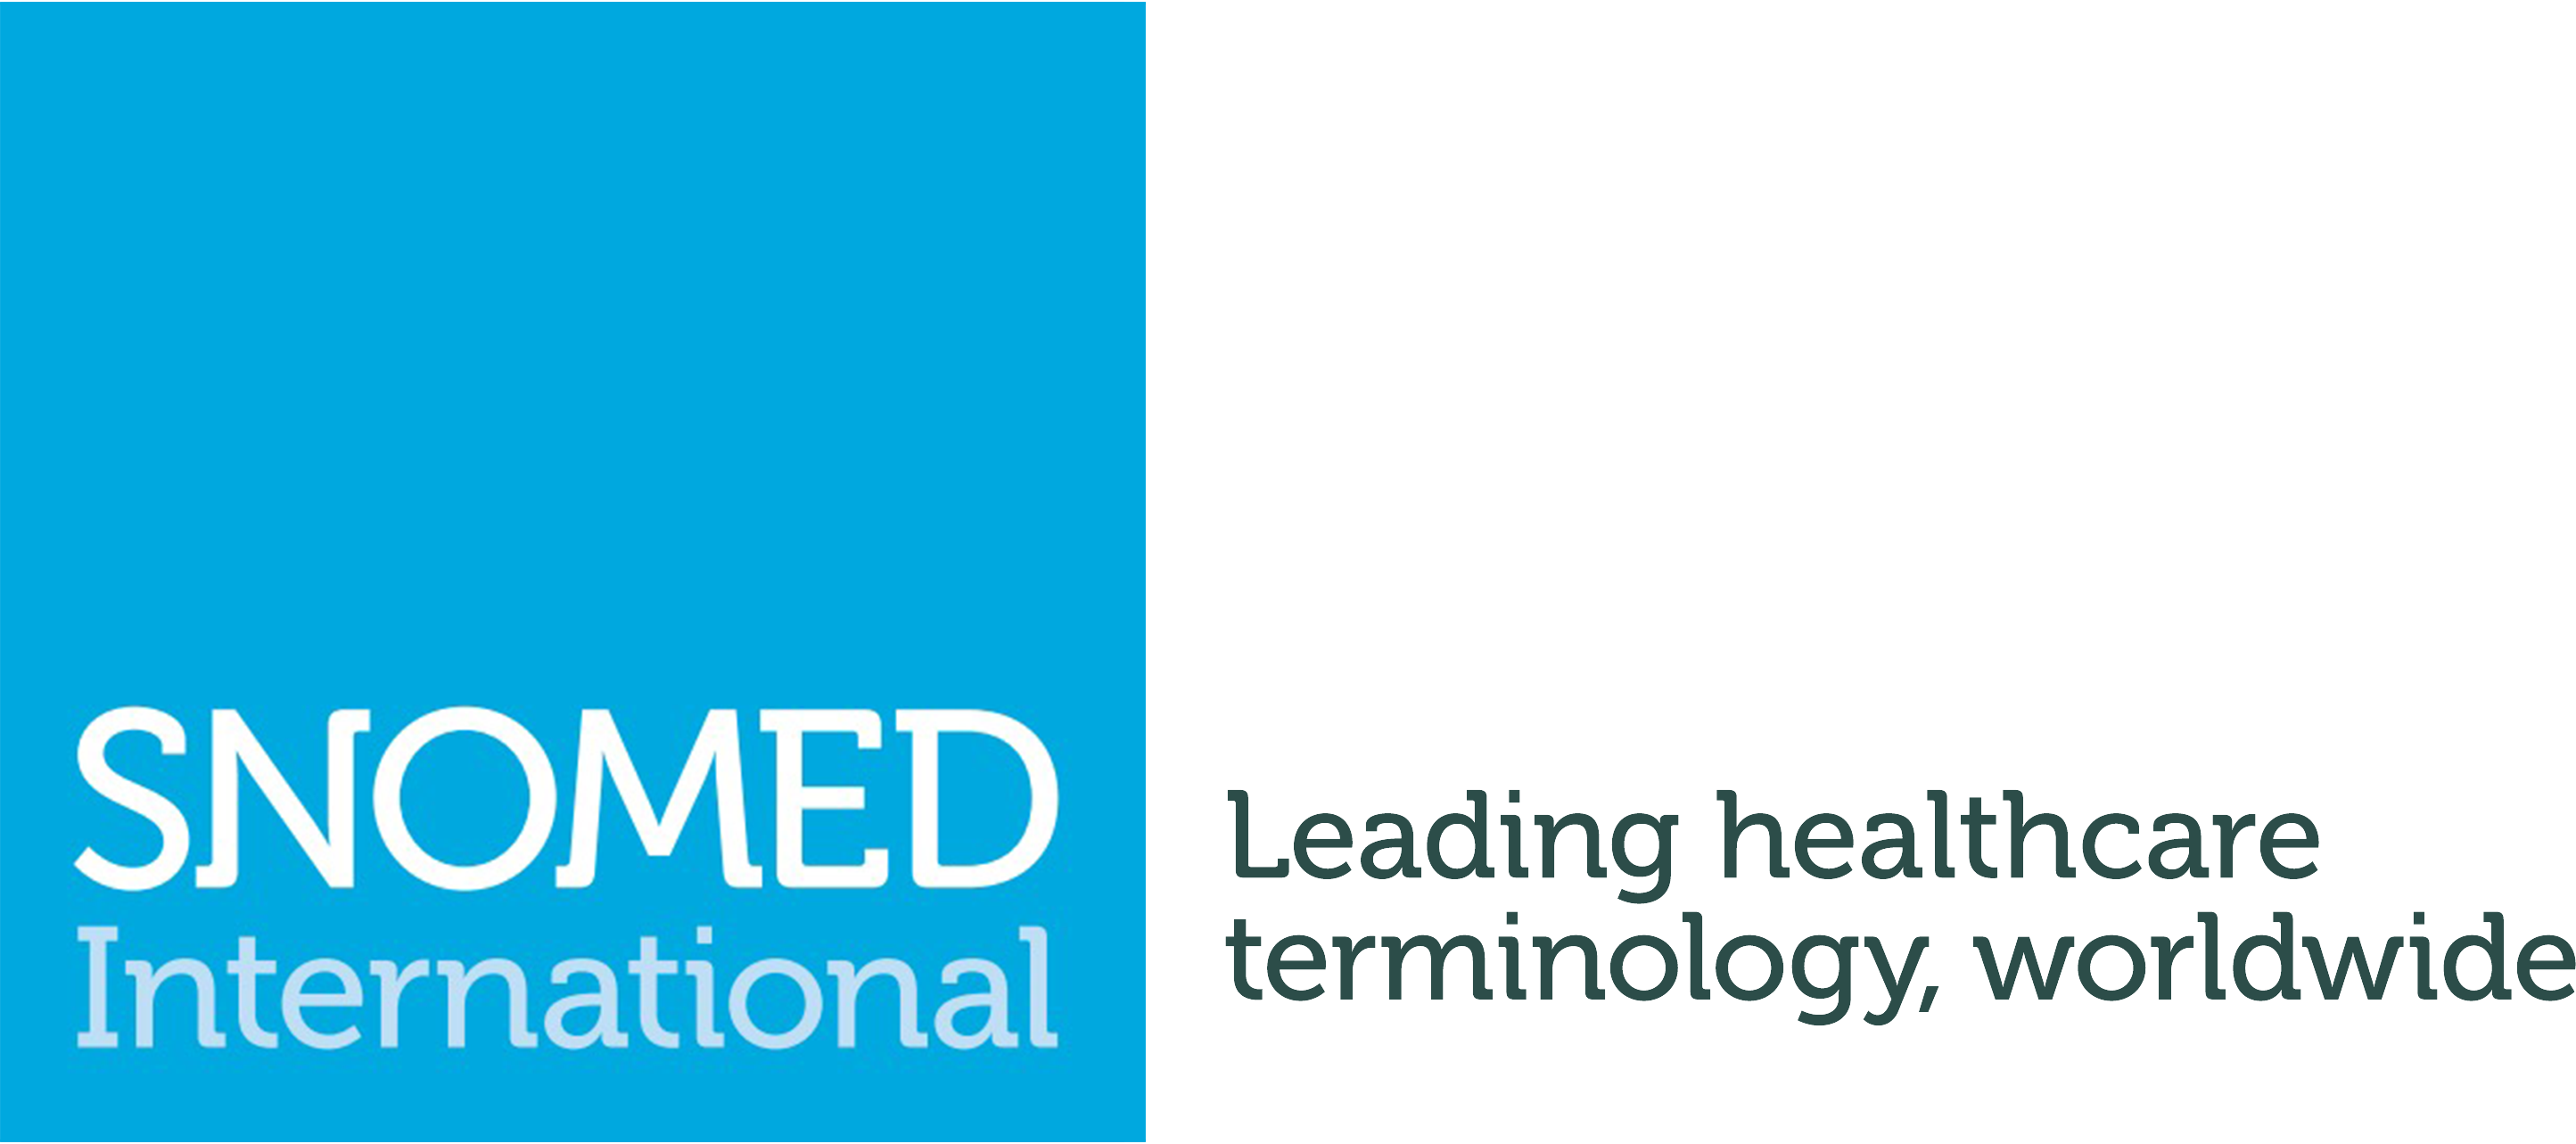 SNOMED International delivering SNOMED, the global clinical terminology